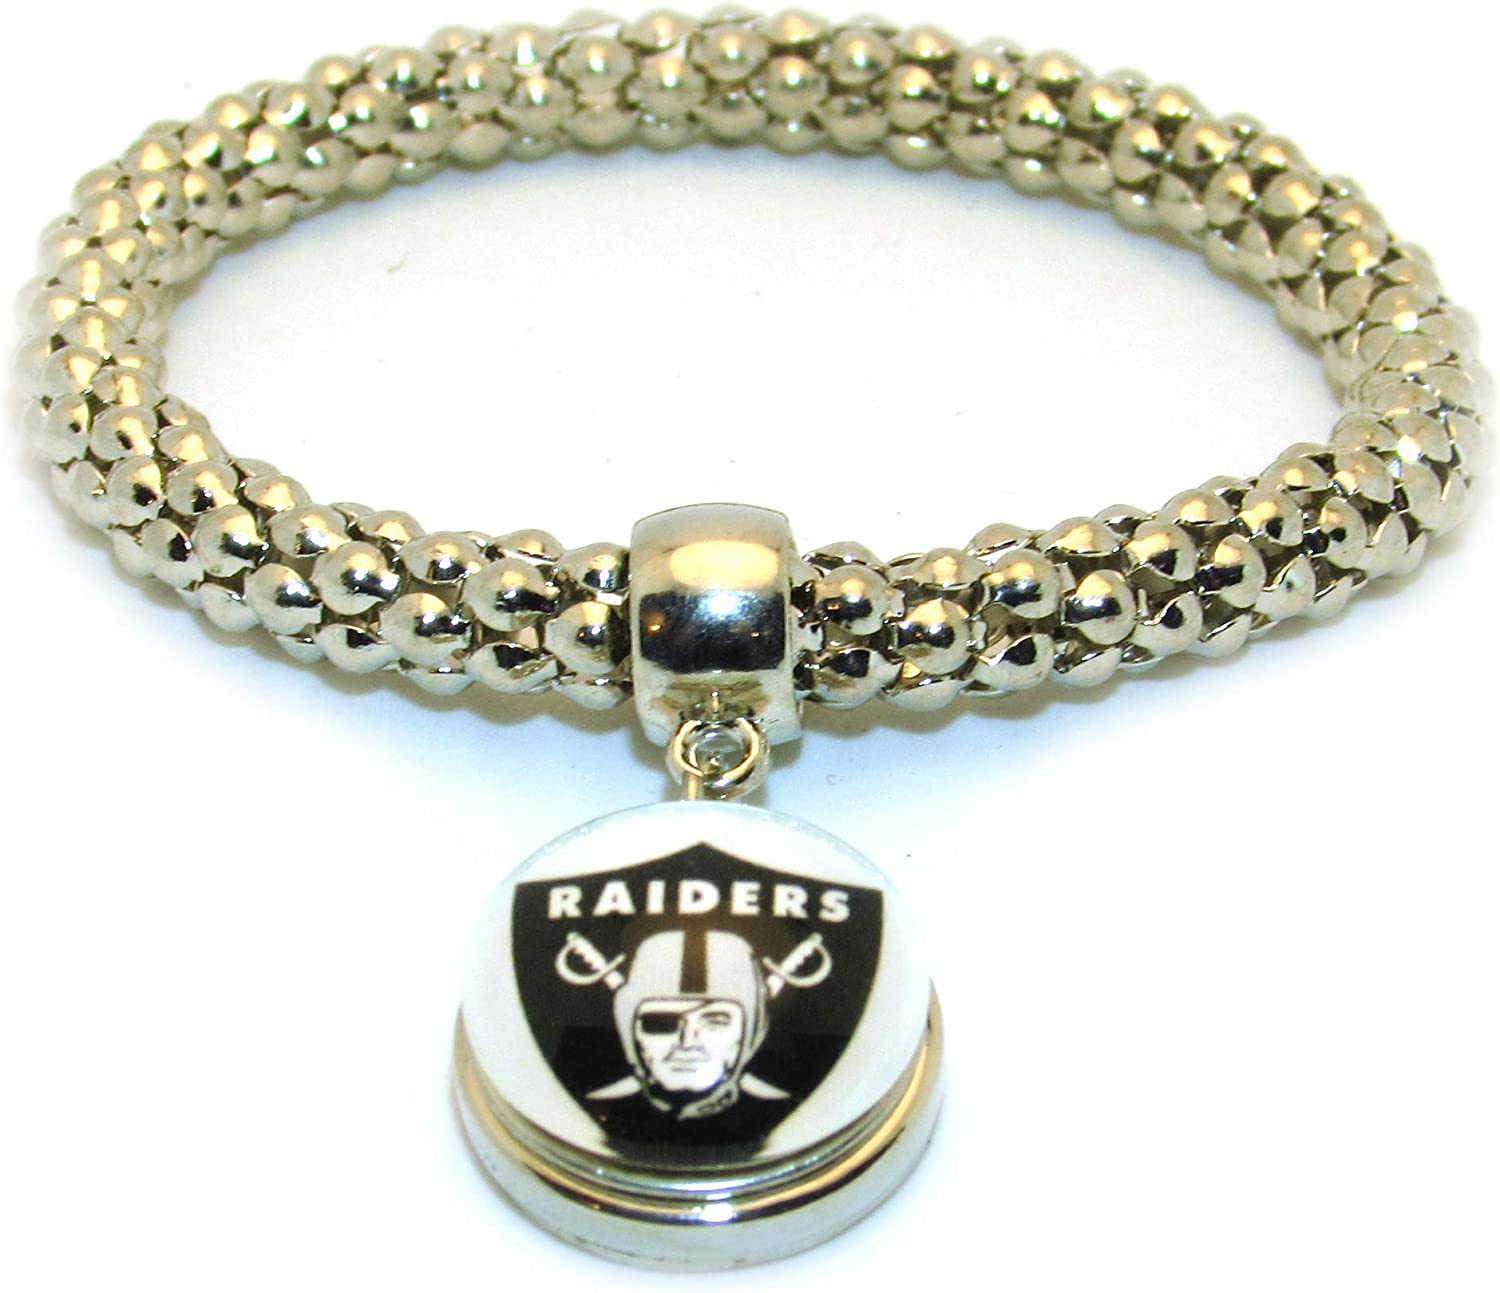 Swamp Fox Oakland Raiders Elastic Adjustable Bracelet wth Team Pendant 7 to 9 inches